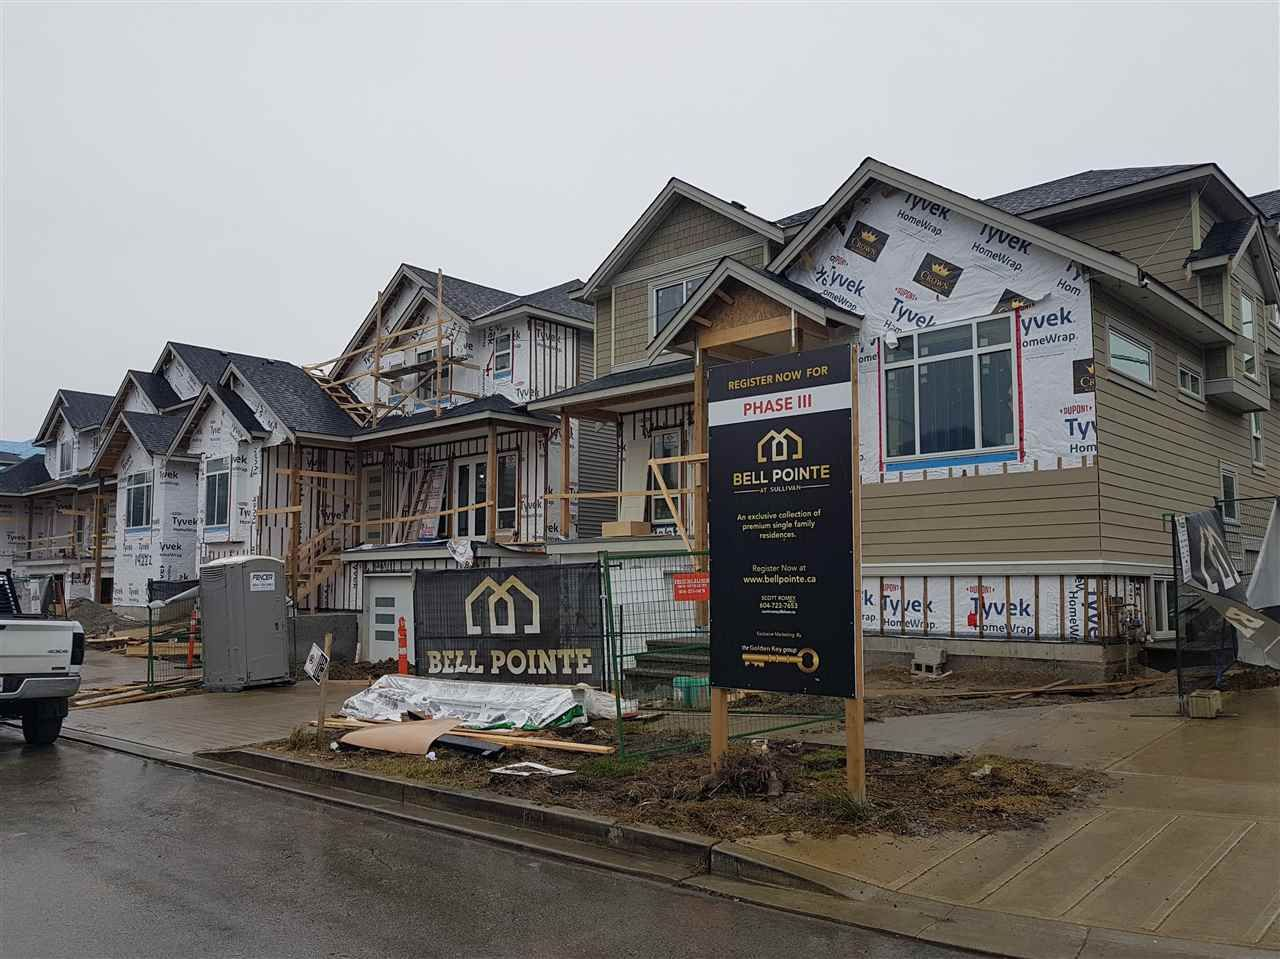 """Main Photo: 14216 61B Avenue in Surrey: Sullivan Station House for sale in """"BELL POINTE"""" : MLS®# R2542264"""